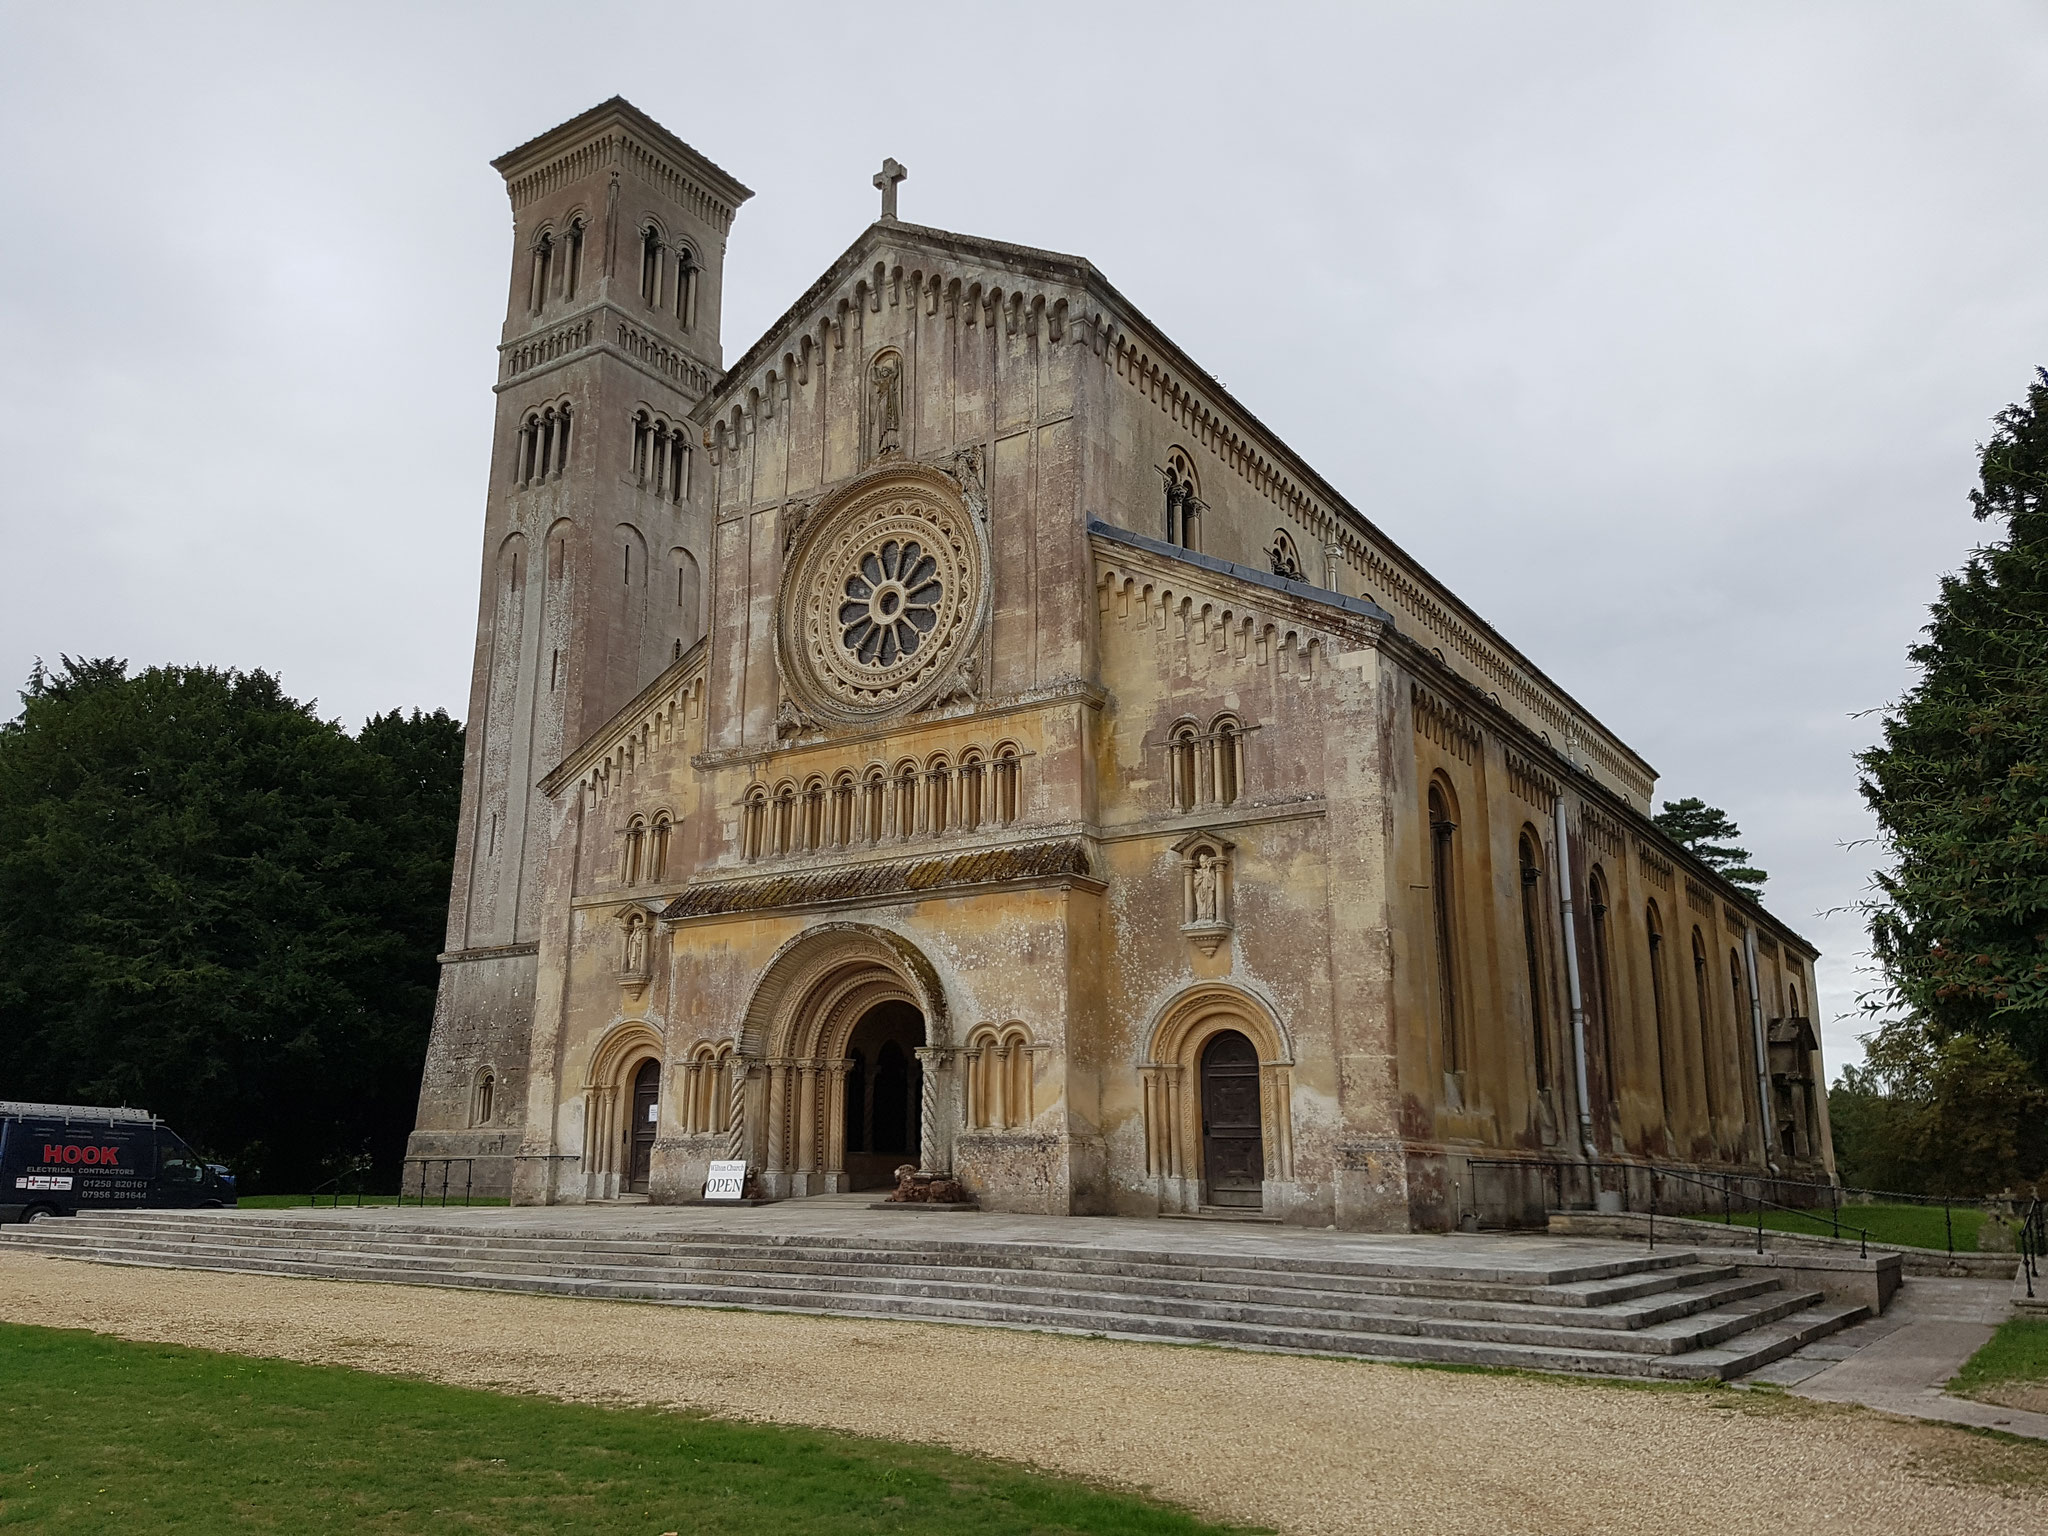 St Mary and St Nicholas. Built 1841-5 by Countess of Pembroke in Lombardic Romanesque style